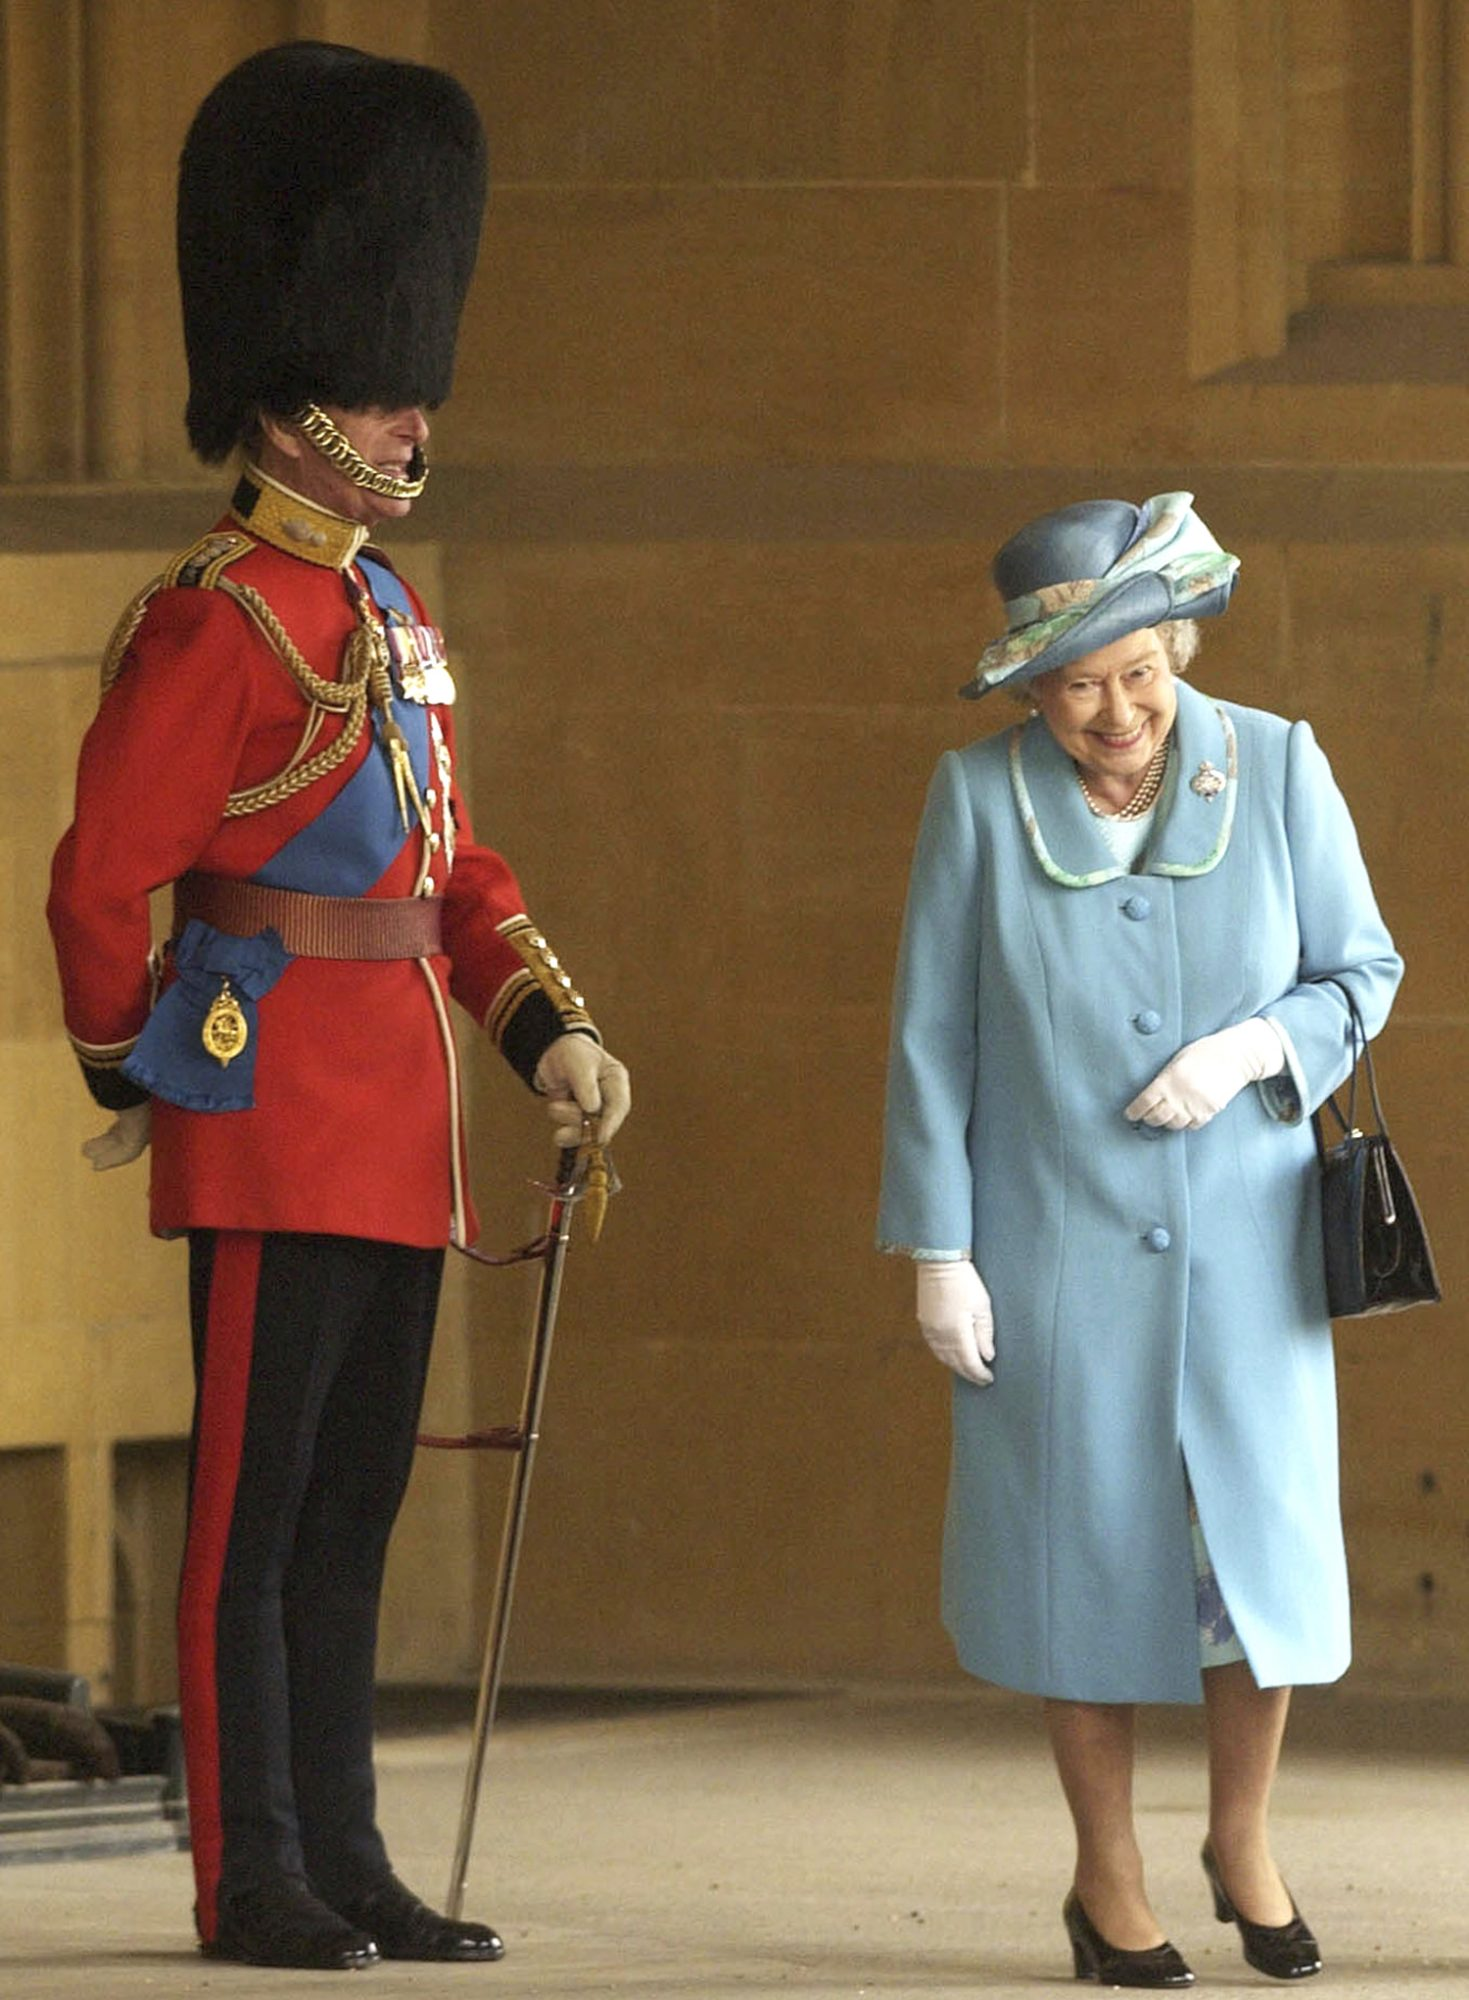 Queen Elizabeth II and Prince Philip prior to The Queen's Company Grenadier Guards ceremonial review